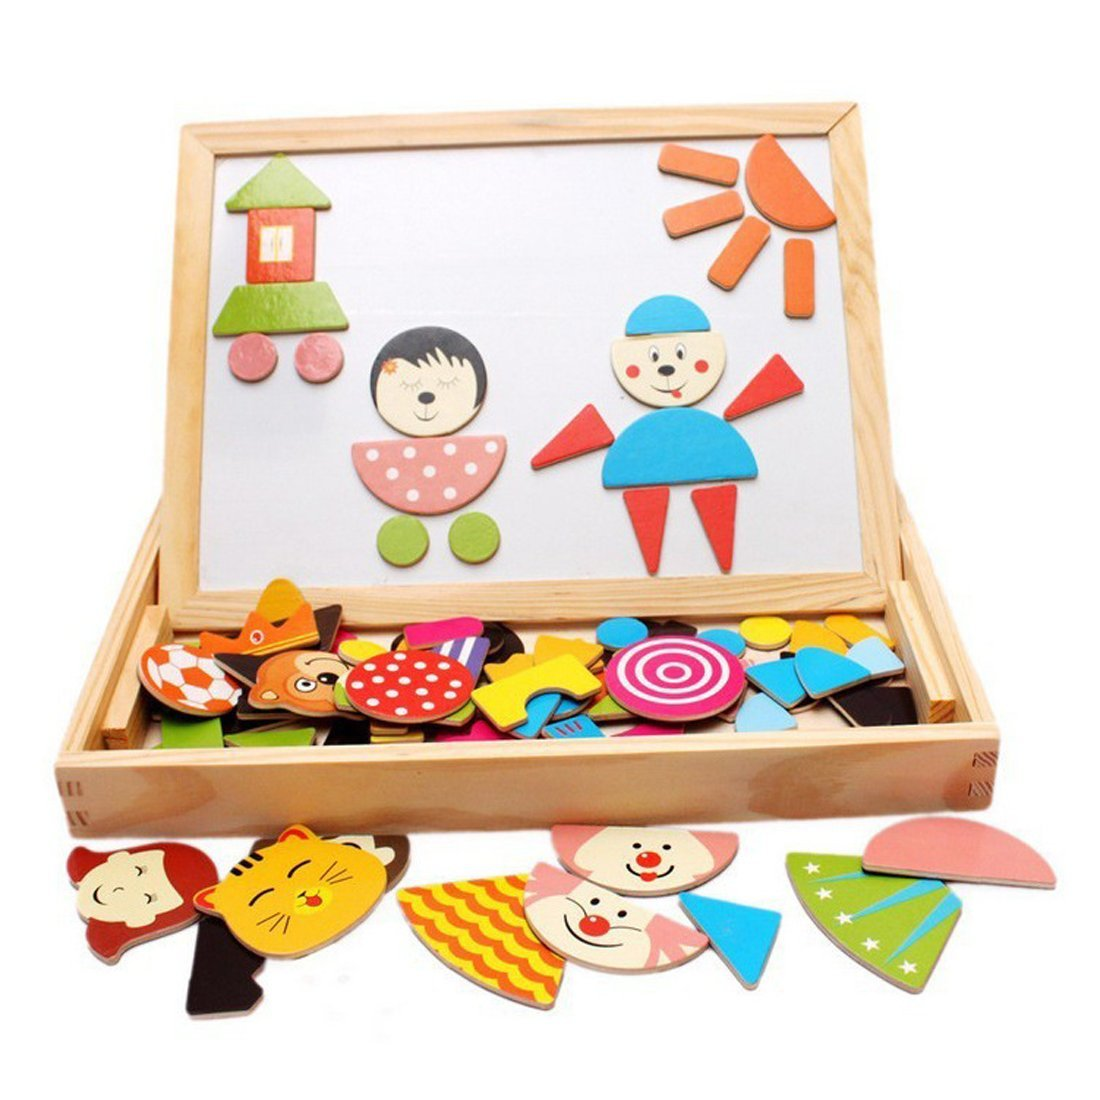 MUWANZI Wooden Magnetic Jigsaw Puzzles Games Toddler Toys Double Sided Drawing Easel for Kids